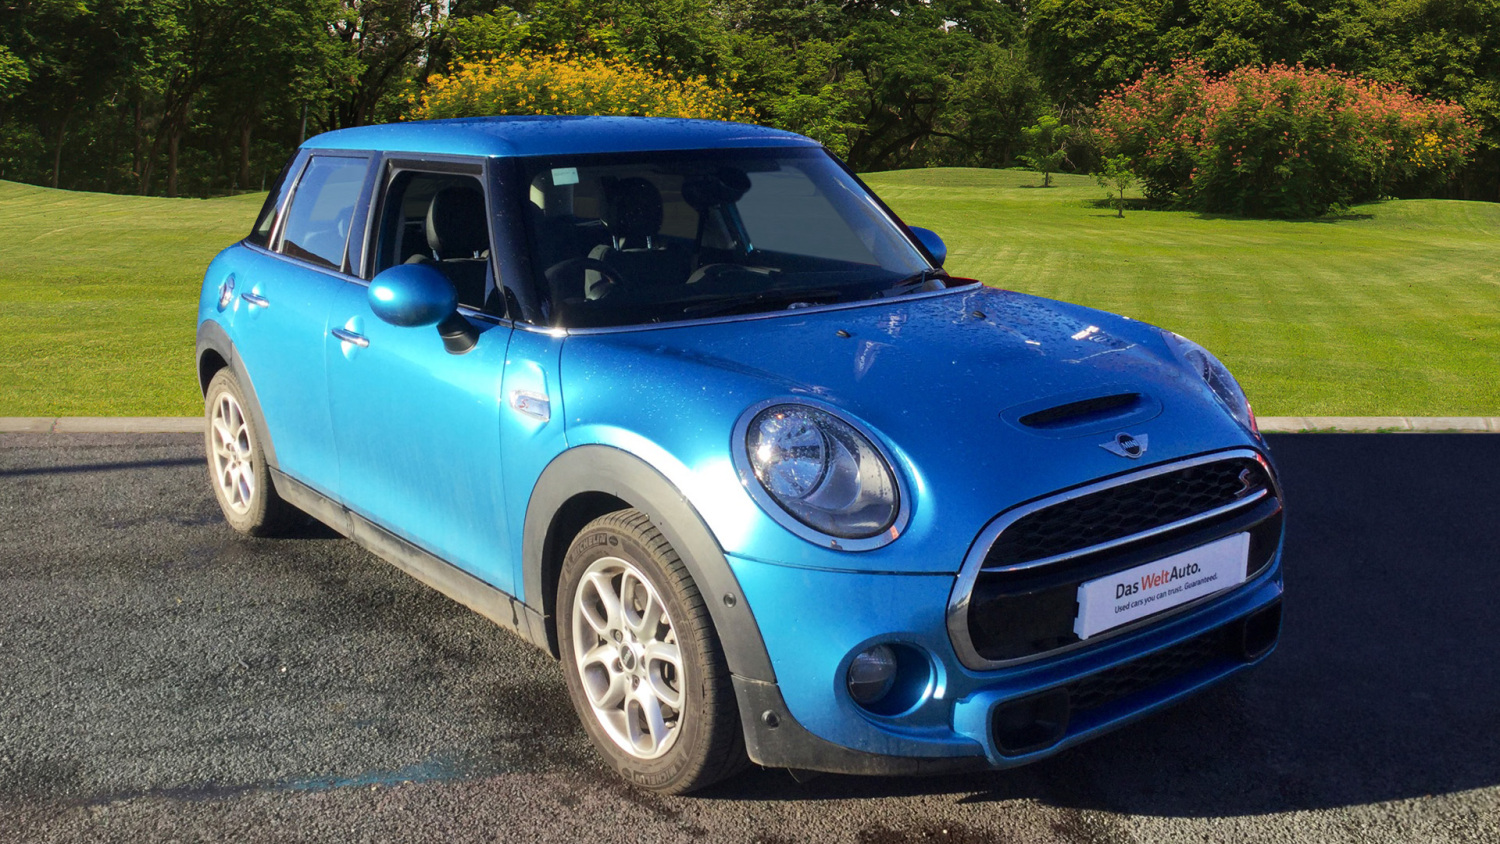 buy online mini hatchback 2 0 cooper s 5dr auto chili pack petrol hatchback for sale bristol. Black Bedroom Furniture Sets. Home Design Ideas